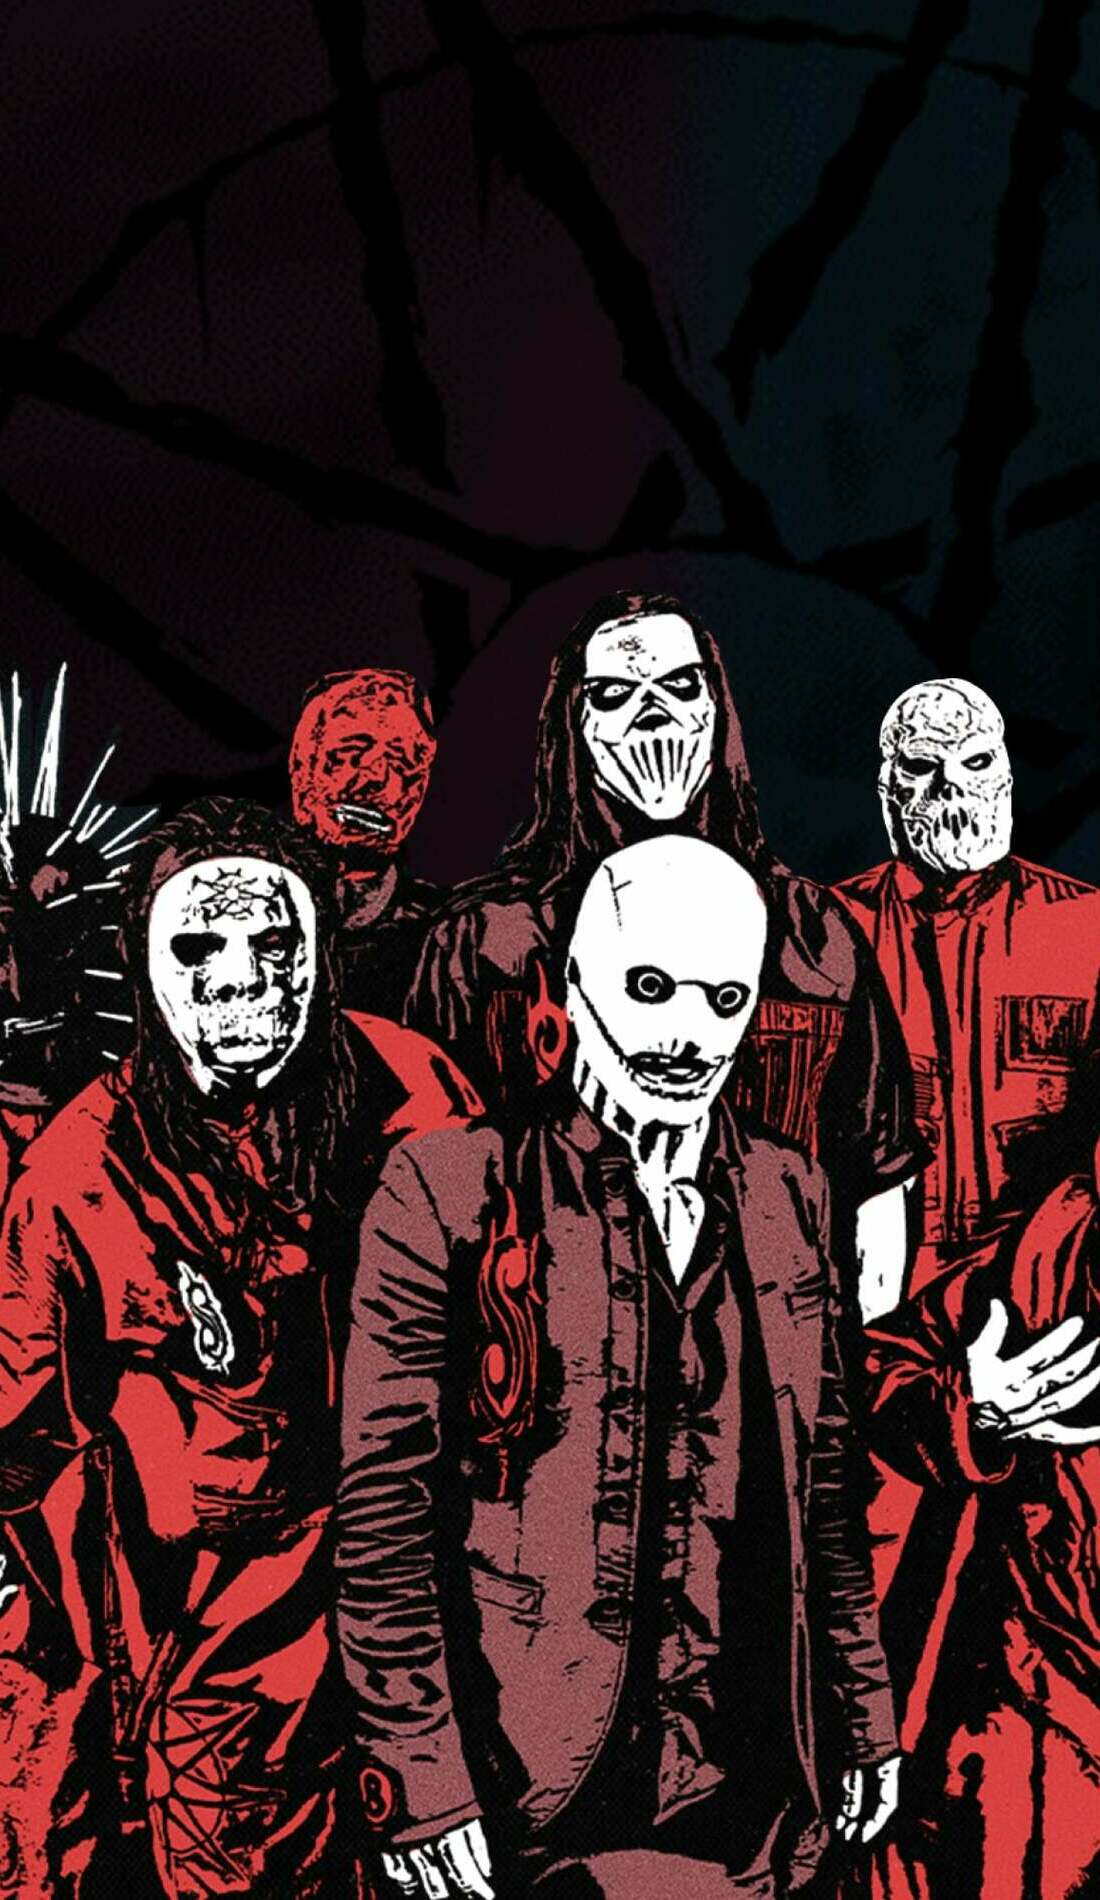 A Knotfest live event